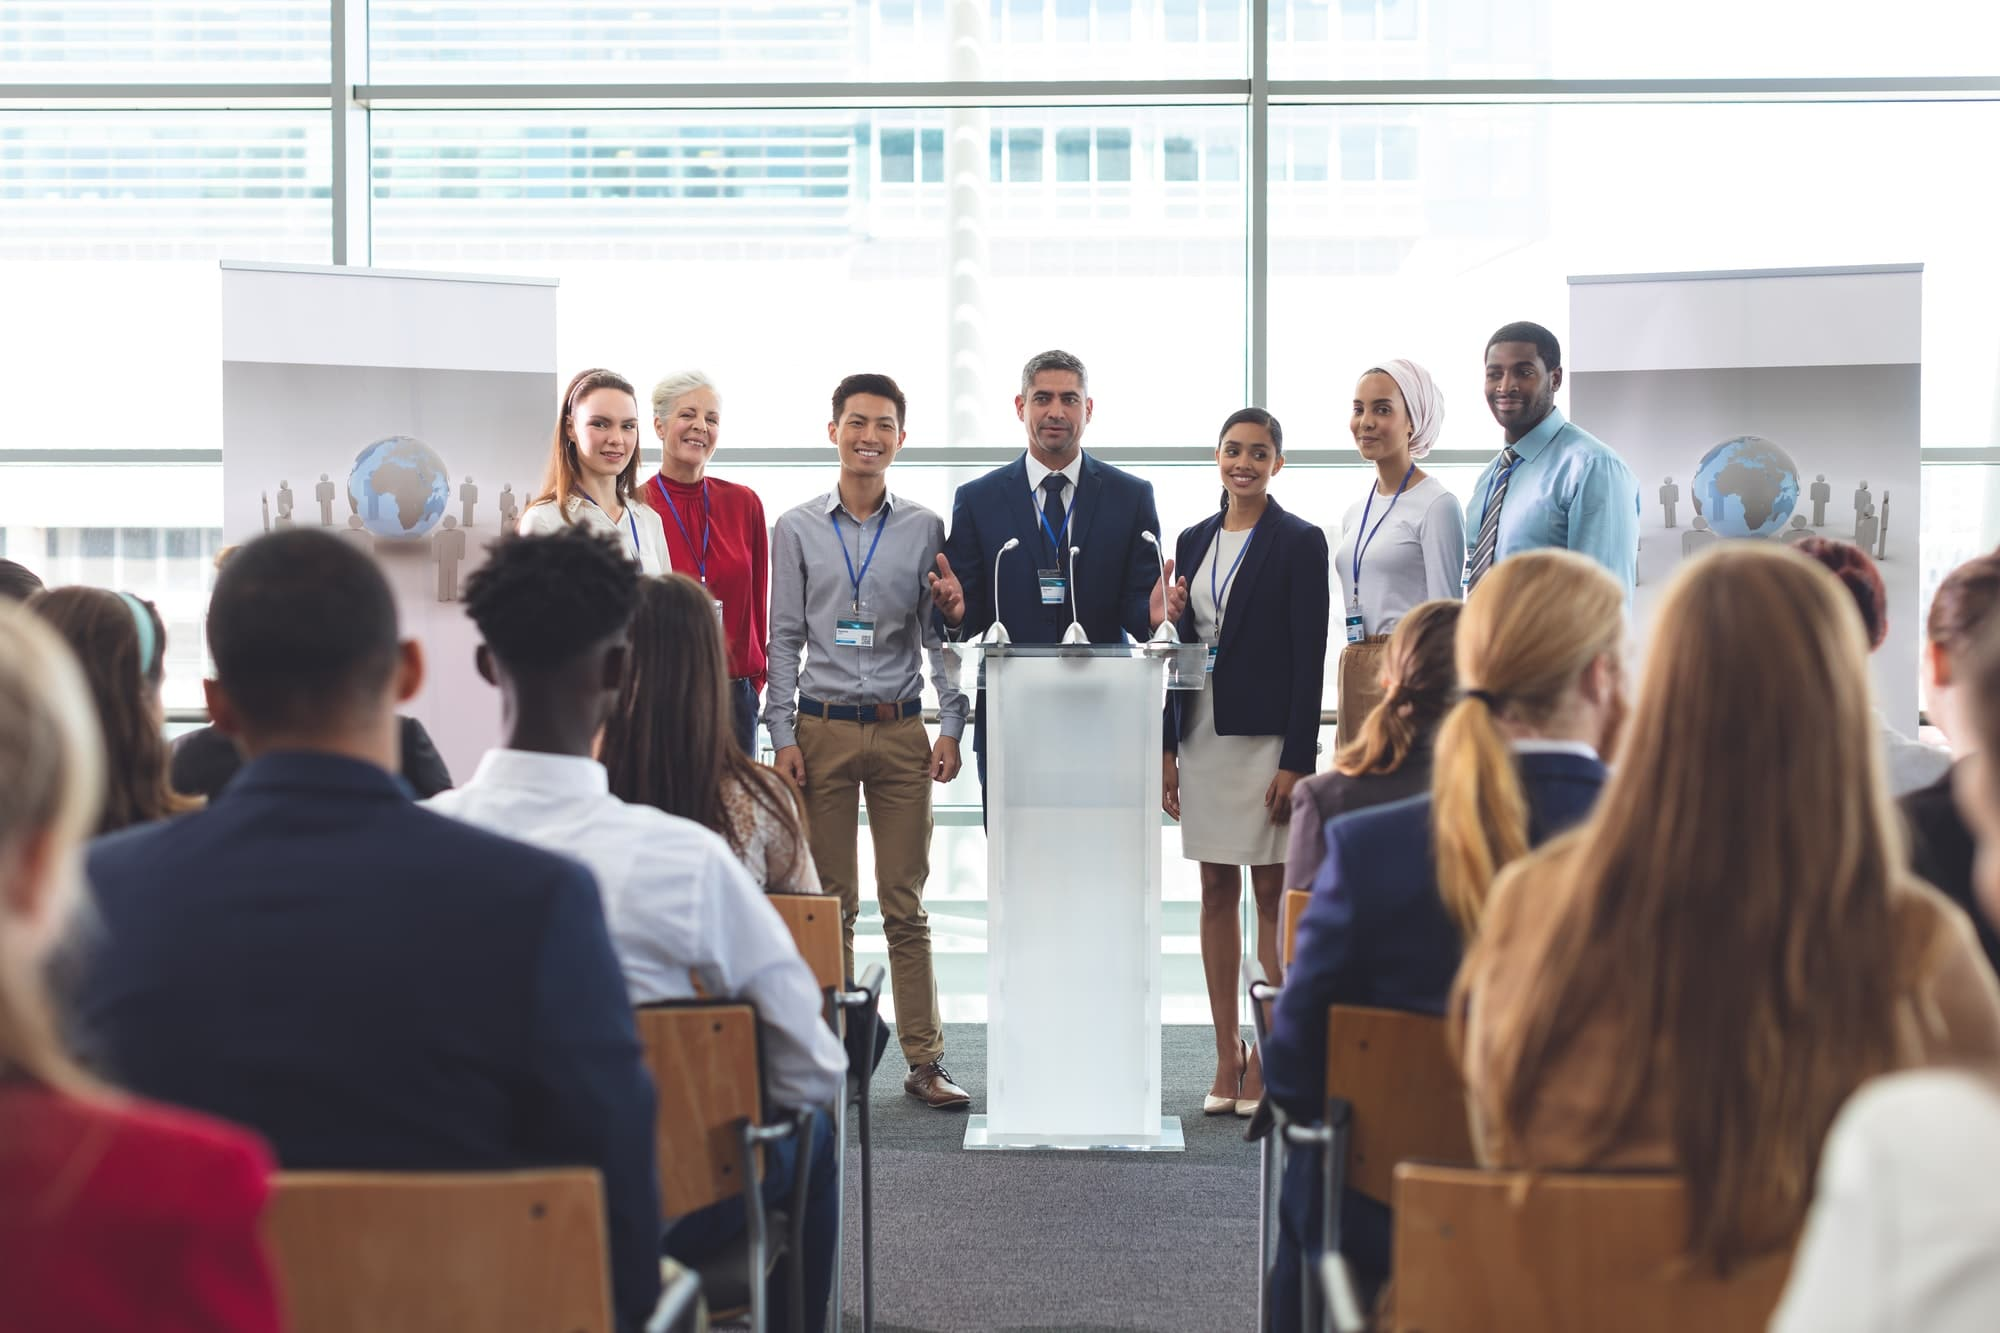 Diverse group of business people standing on podium while speaking at business seminar